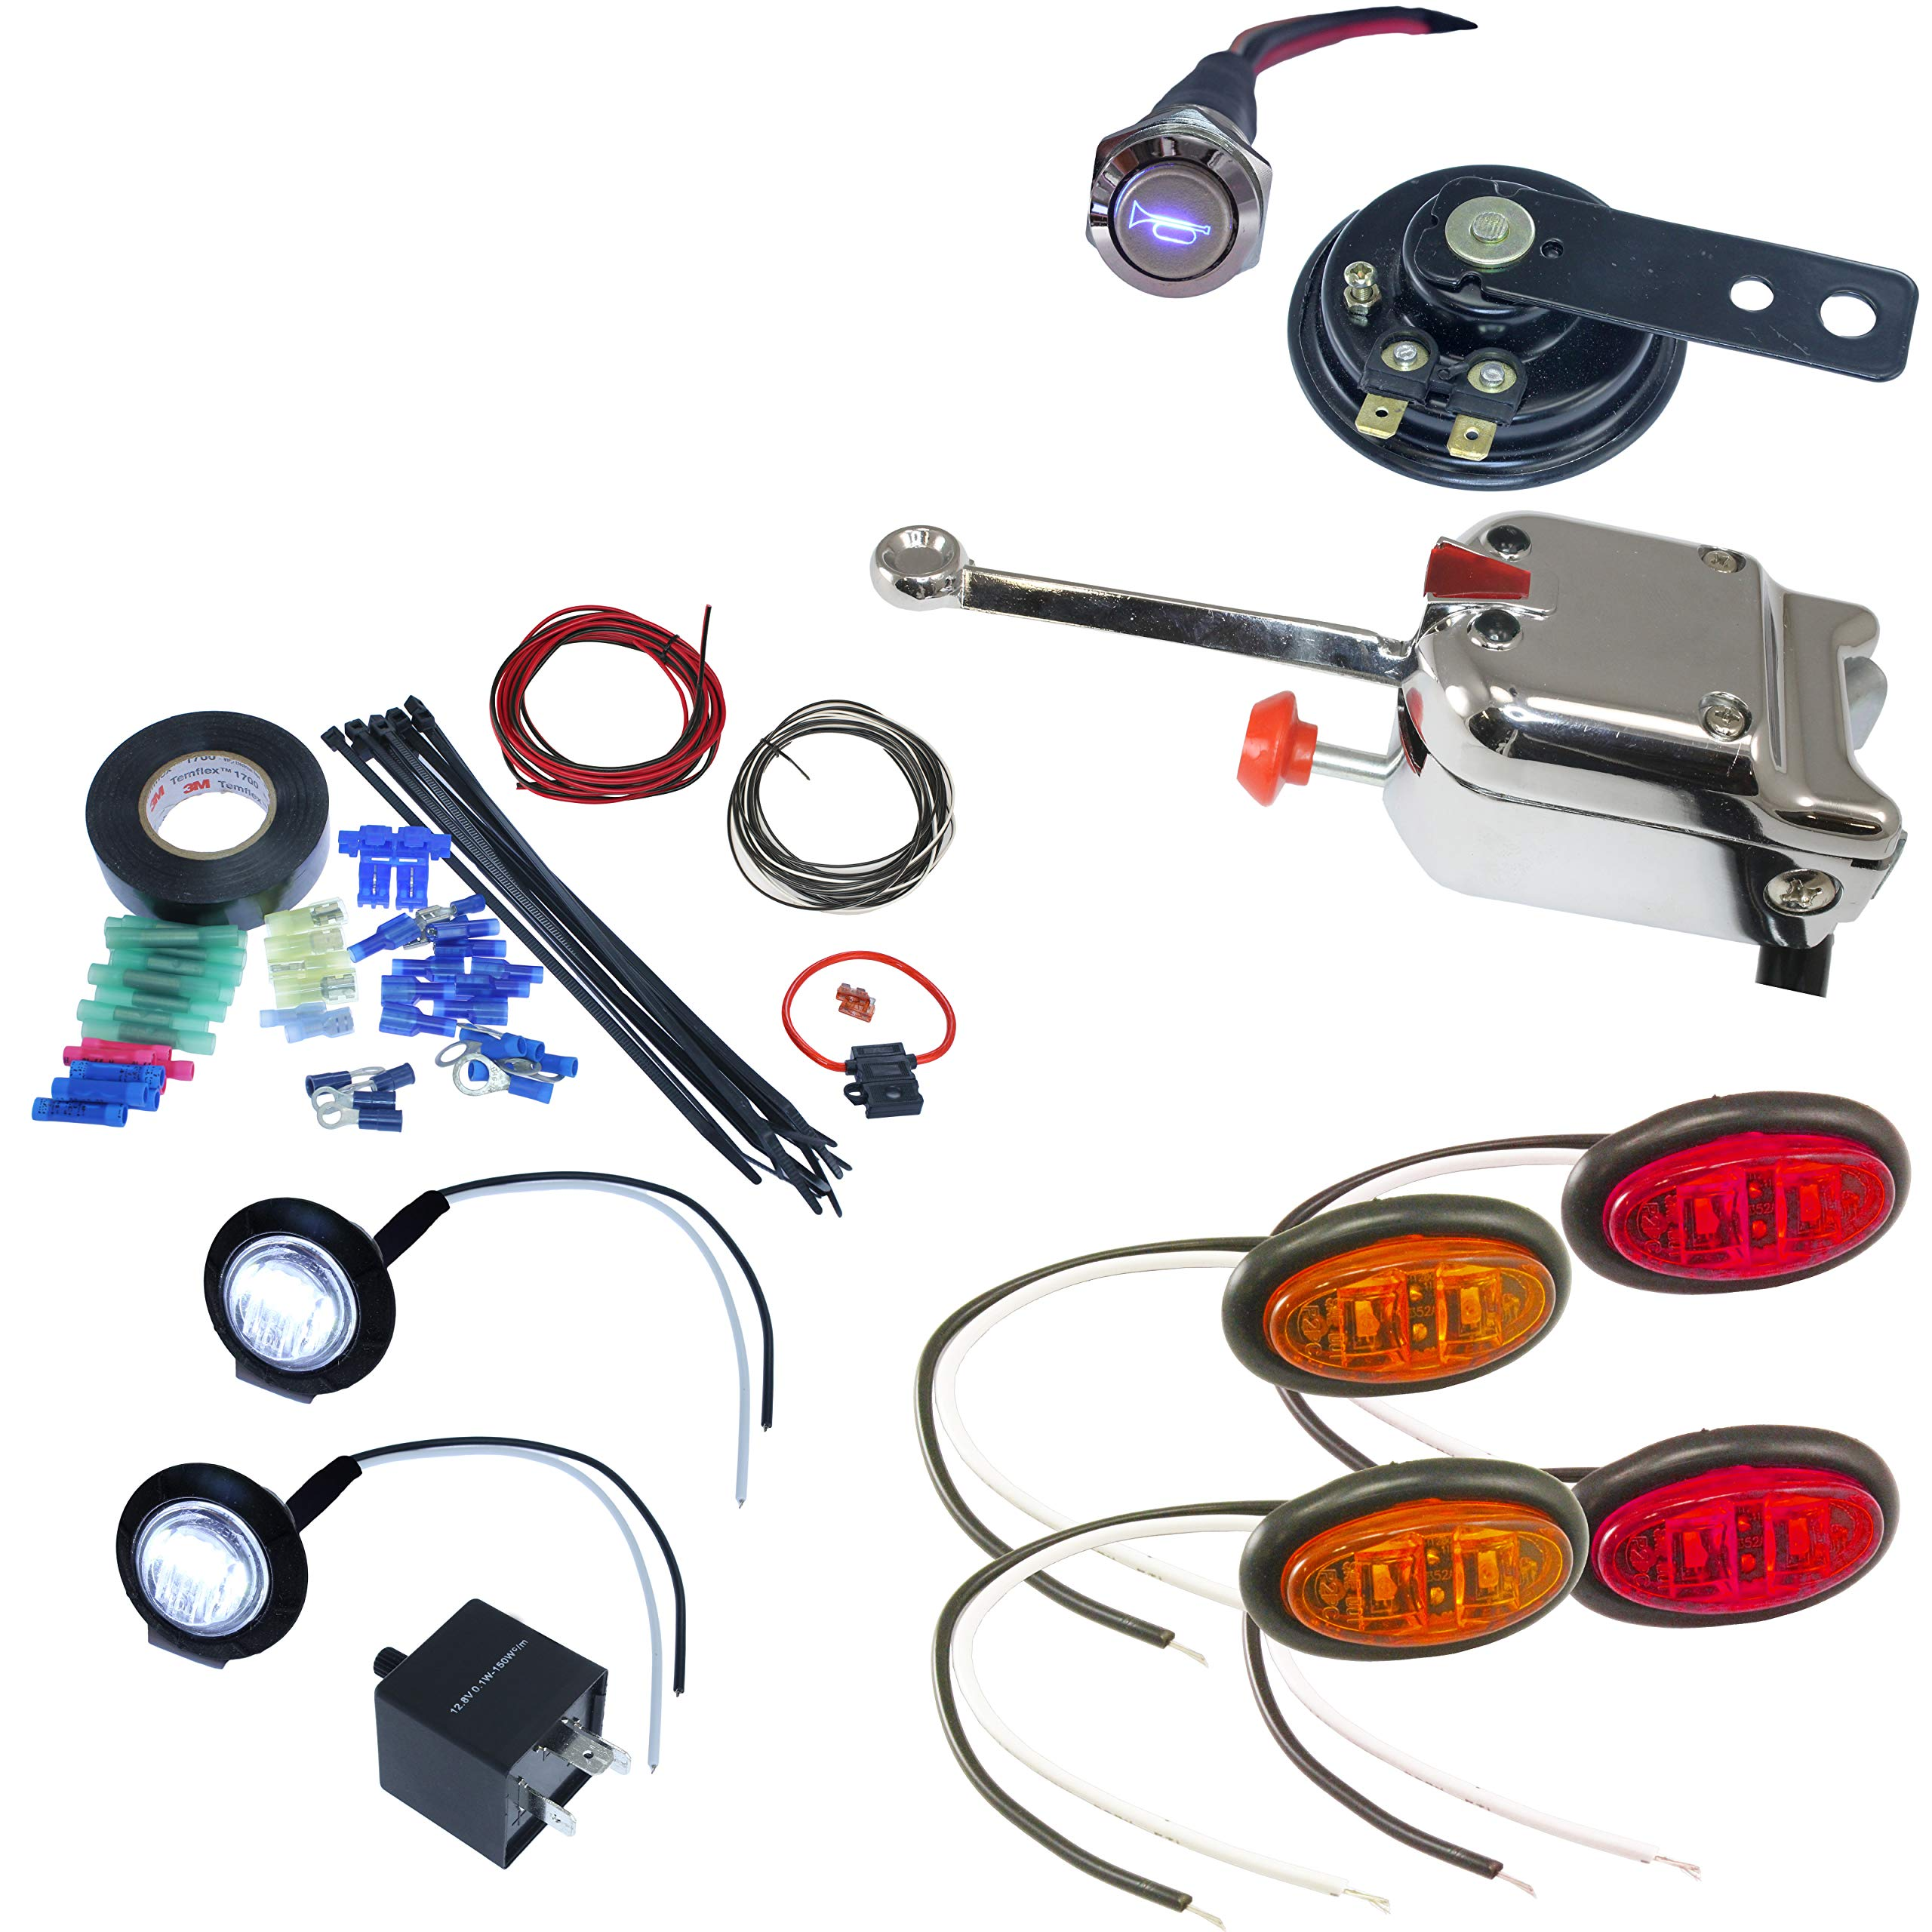 UTV ATV Turn Signal Kit with Horn Oval LED, Lever Switch